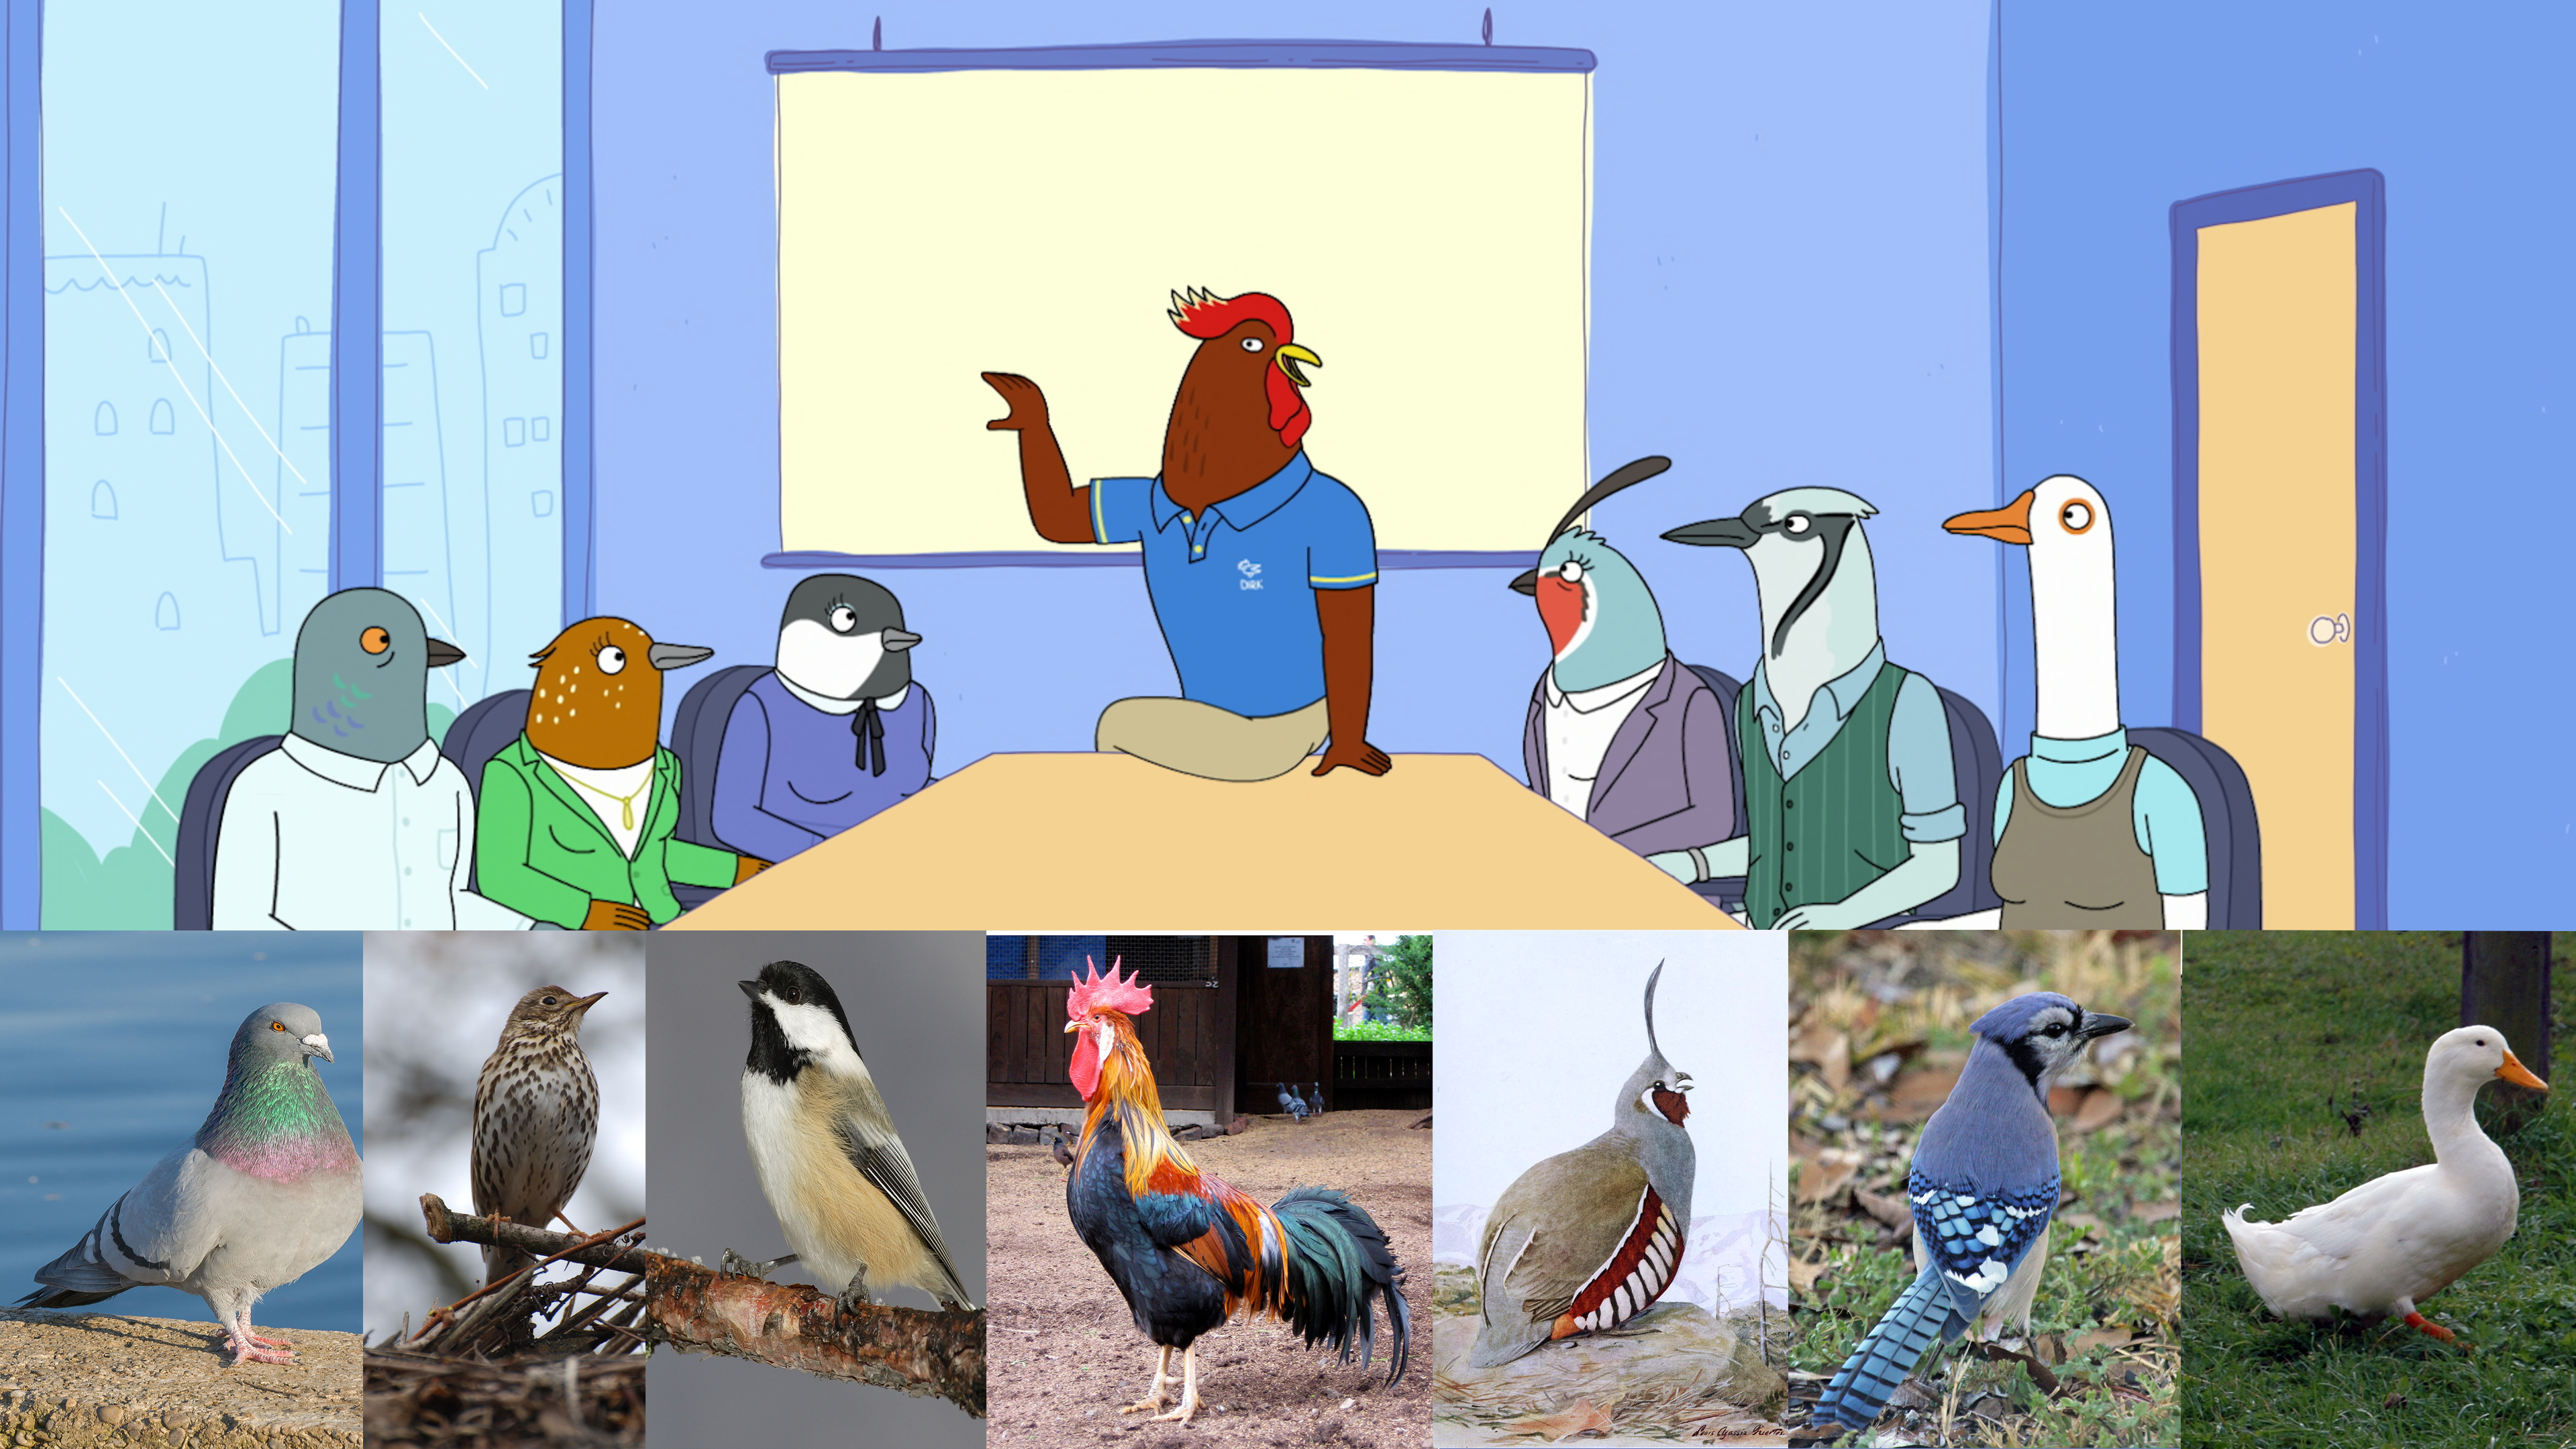 An Avian Aficionado Watched Tuca & Bertie, Then Tried To Identify All The Birds